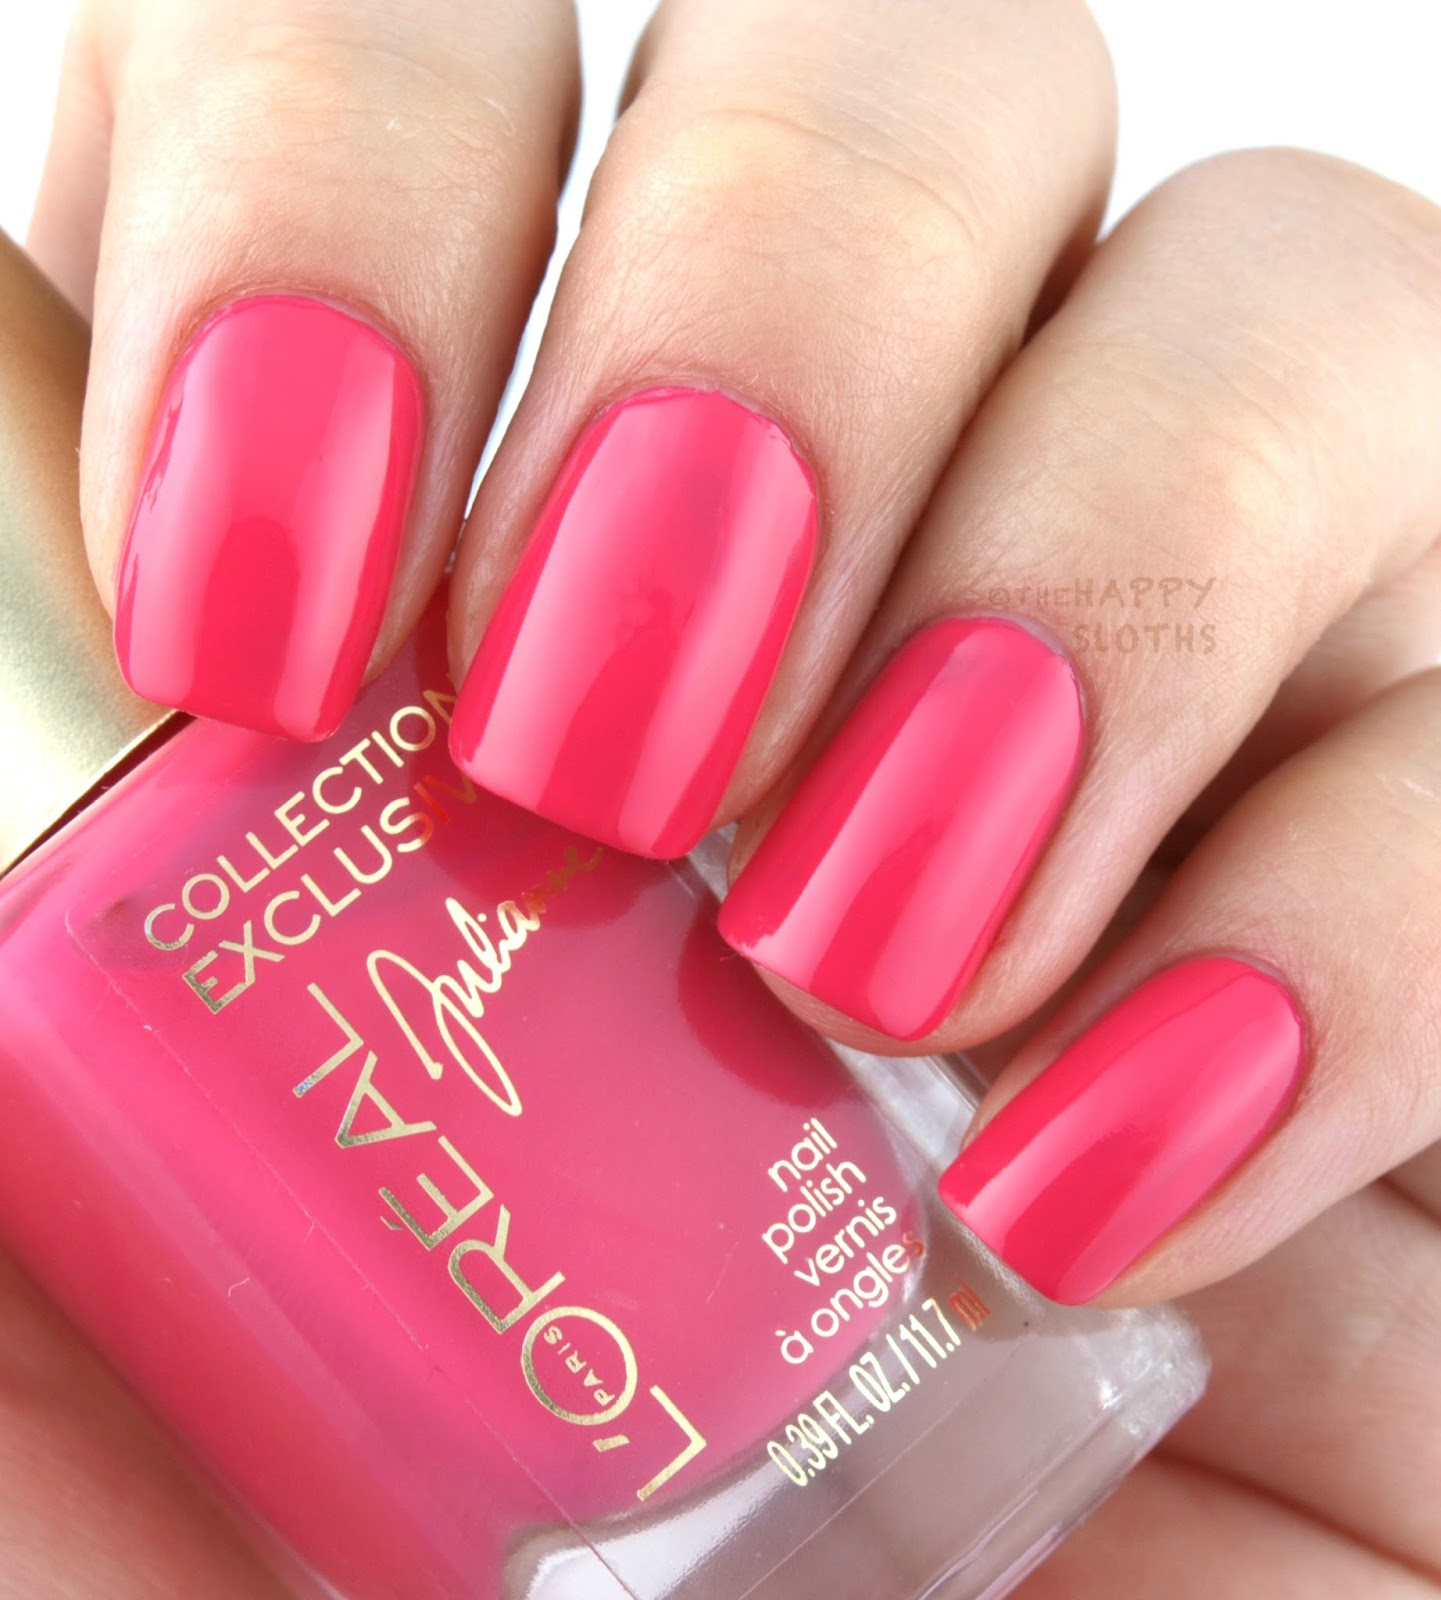 L\'Oreal Collection Exclusive Pinks Collection Nail Polish: Review ...